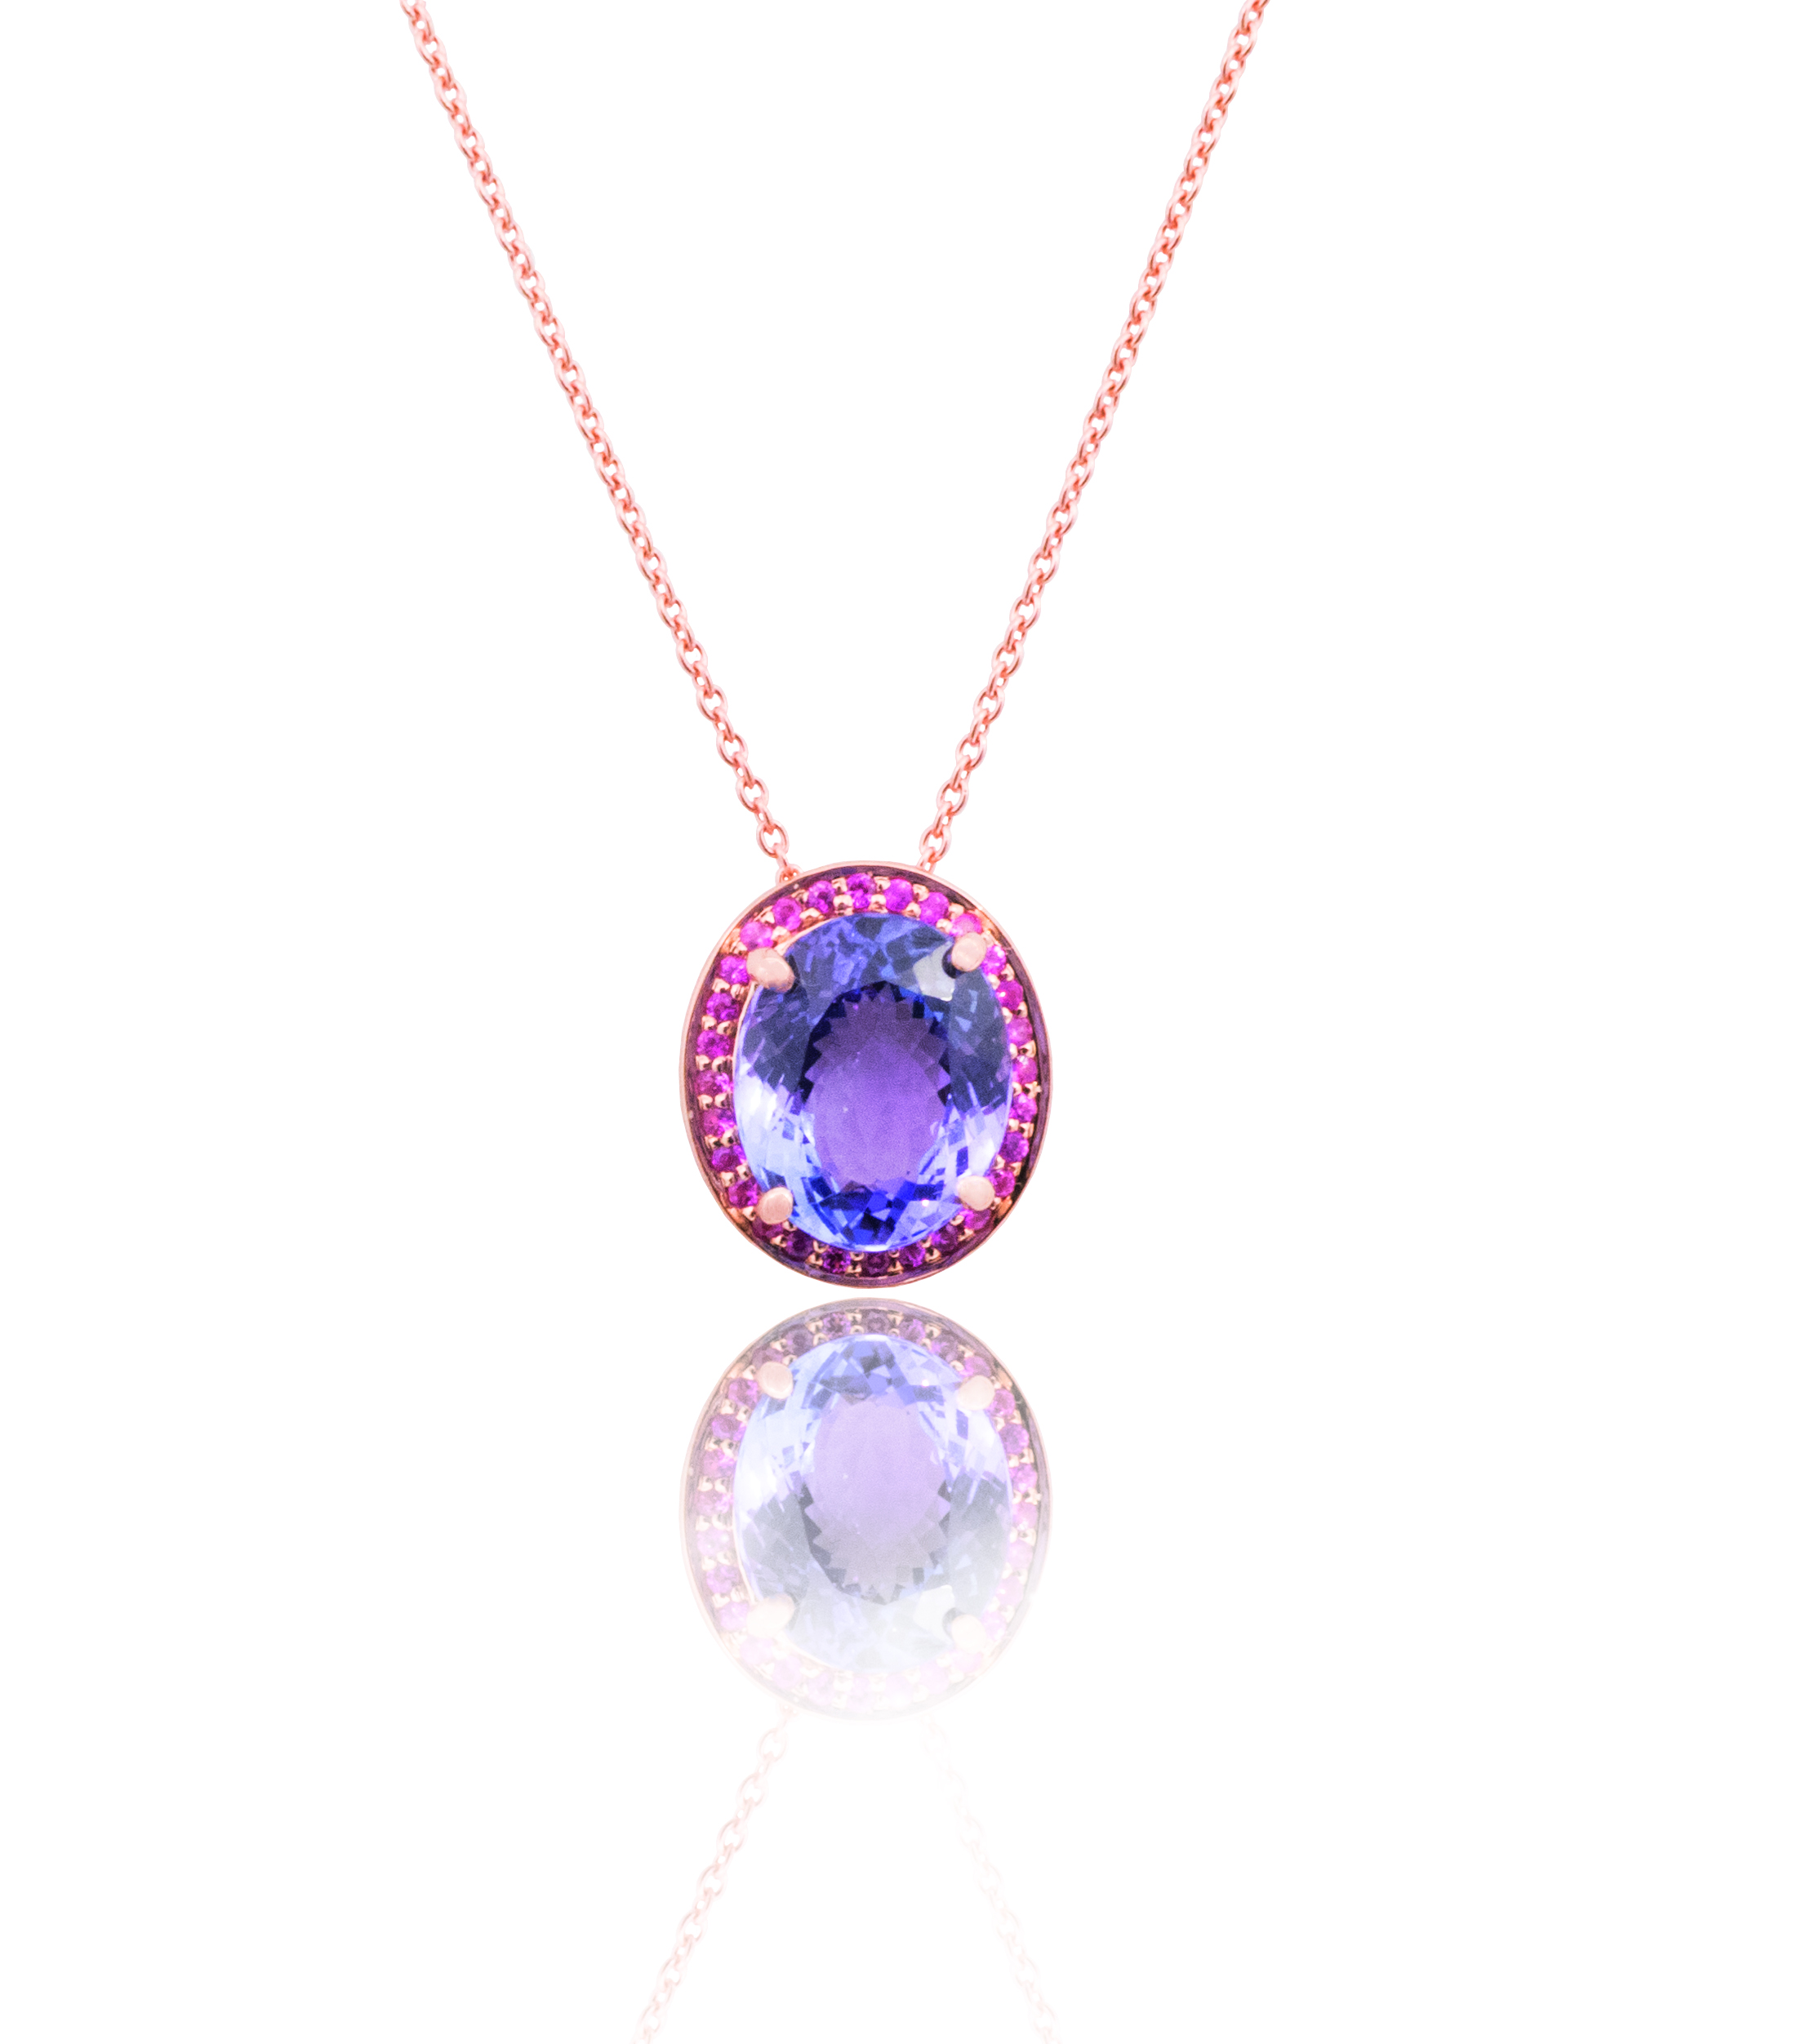 Tanzanite and Sapphire necklace!